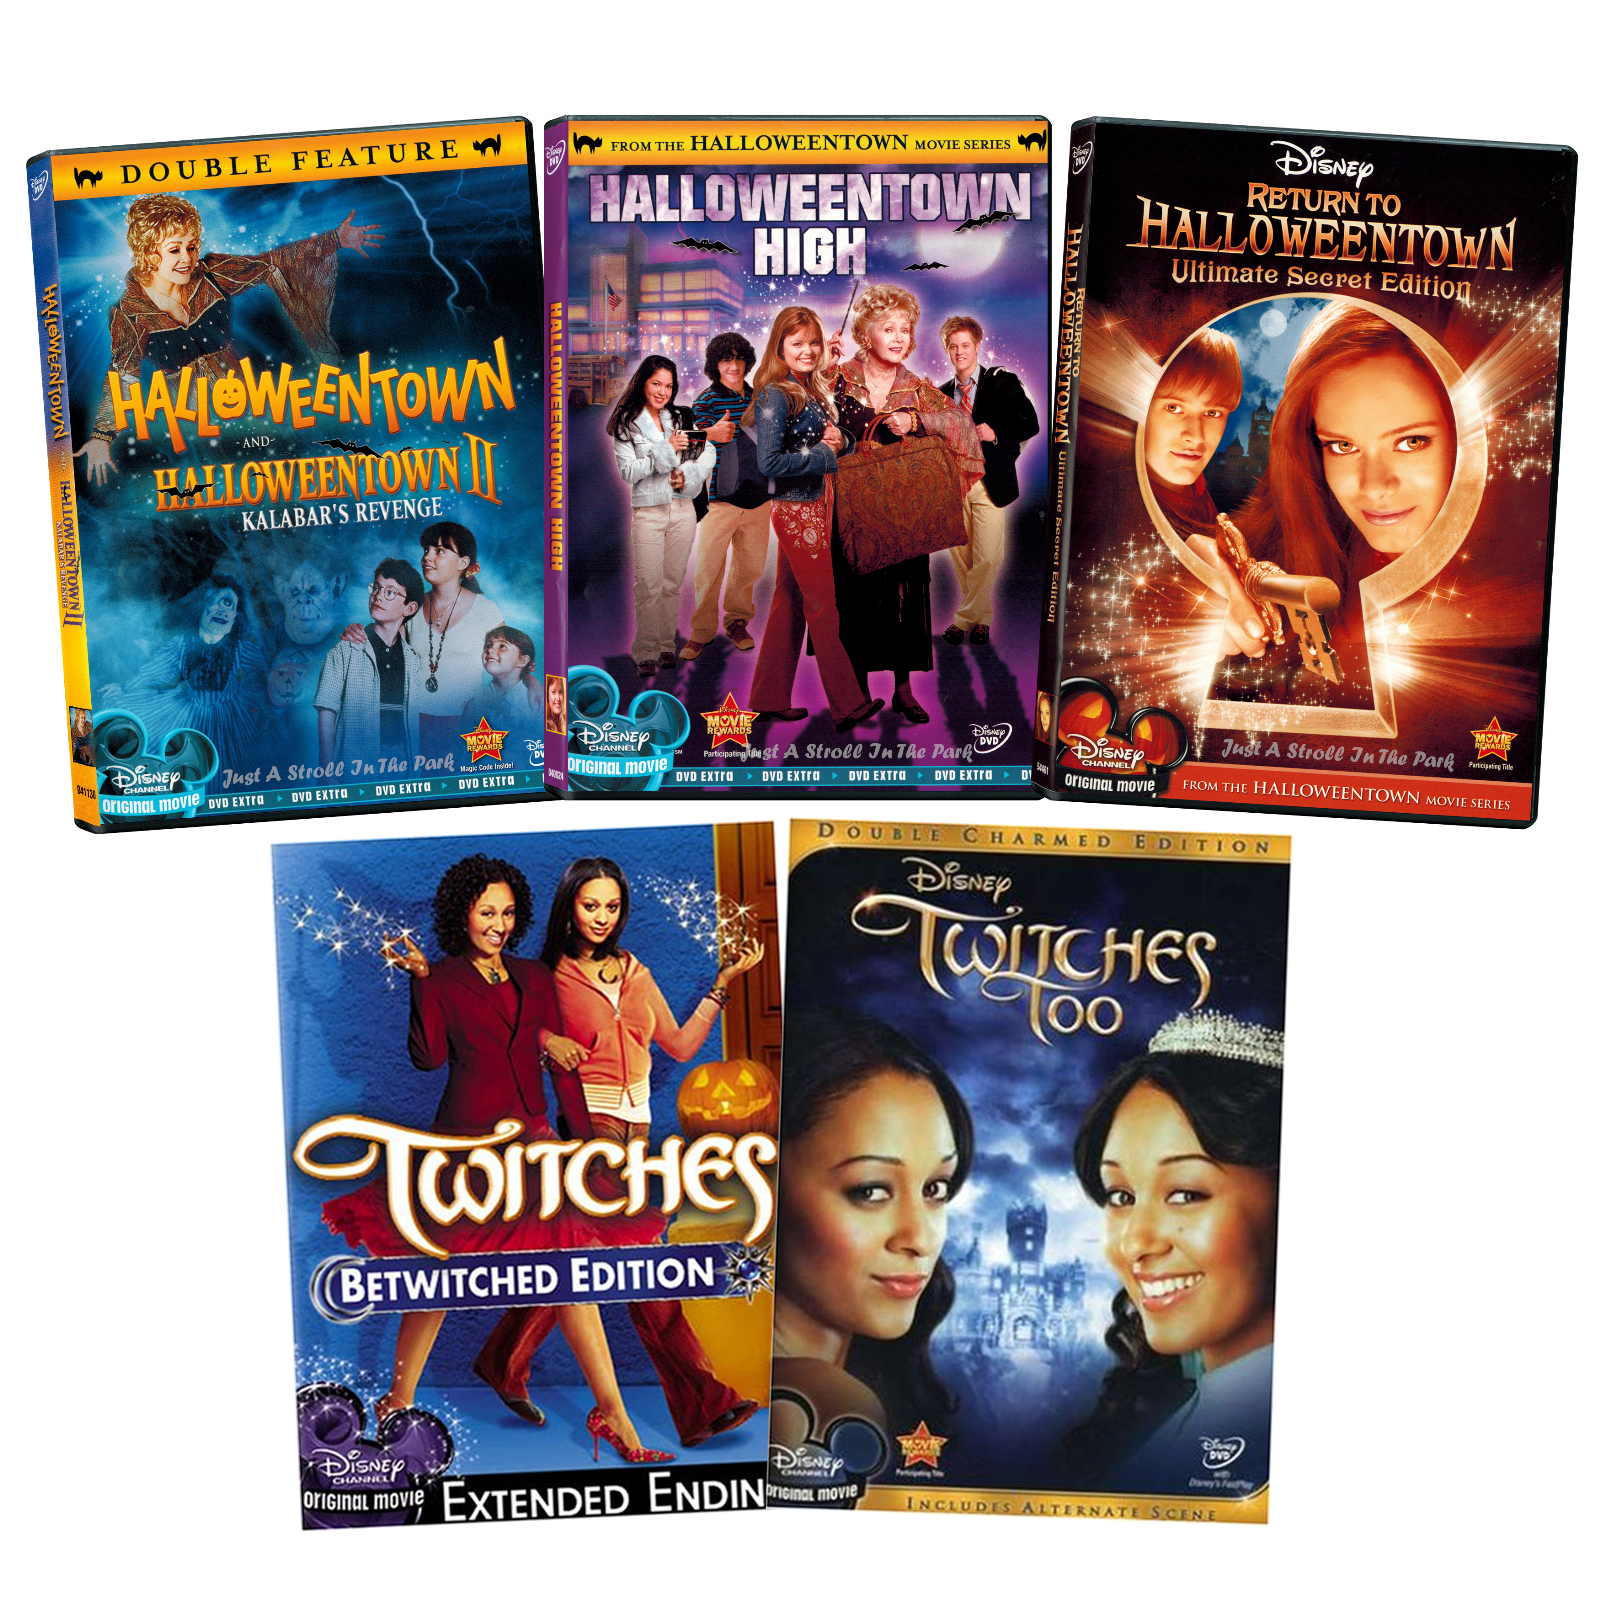 disney channel halloween movies twitches 1 2 halloweentown 1 4 boxdvd sets